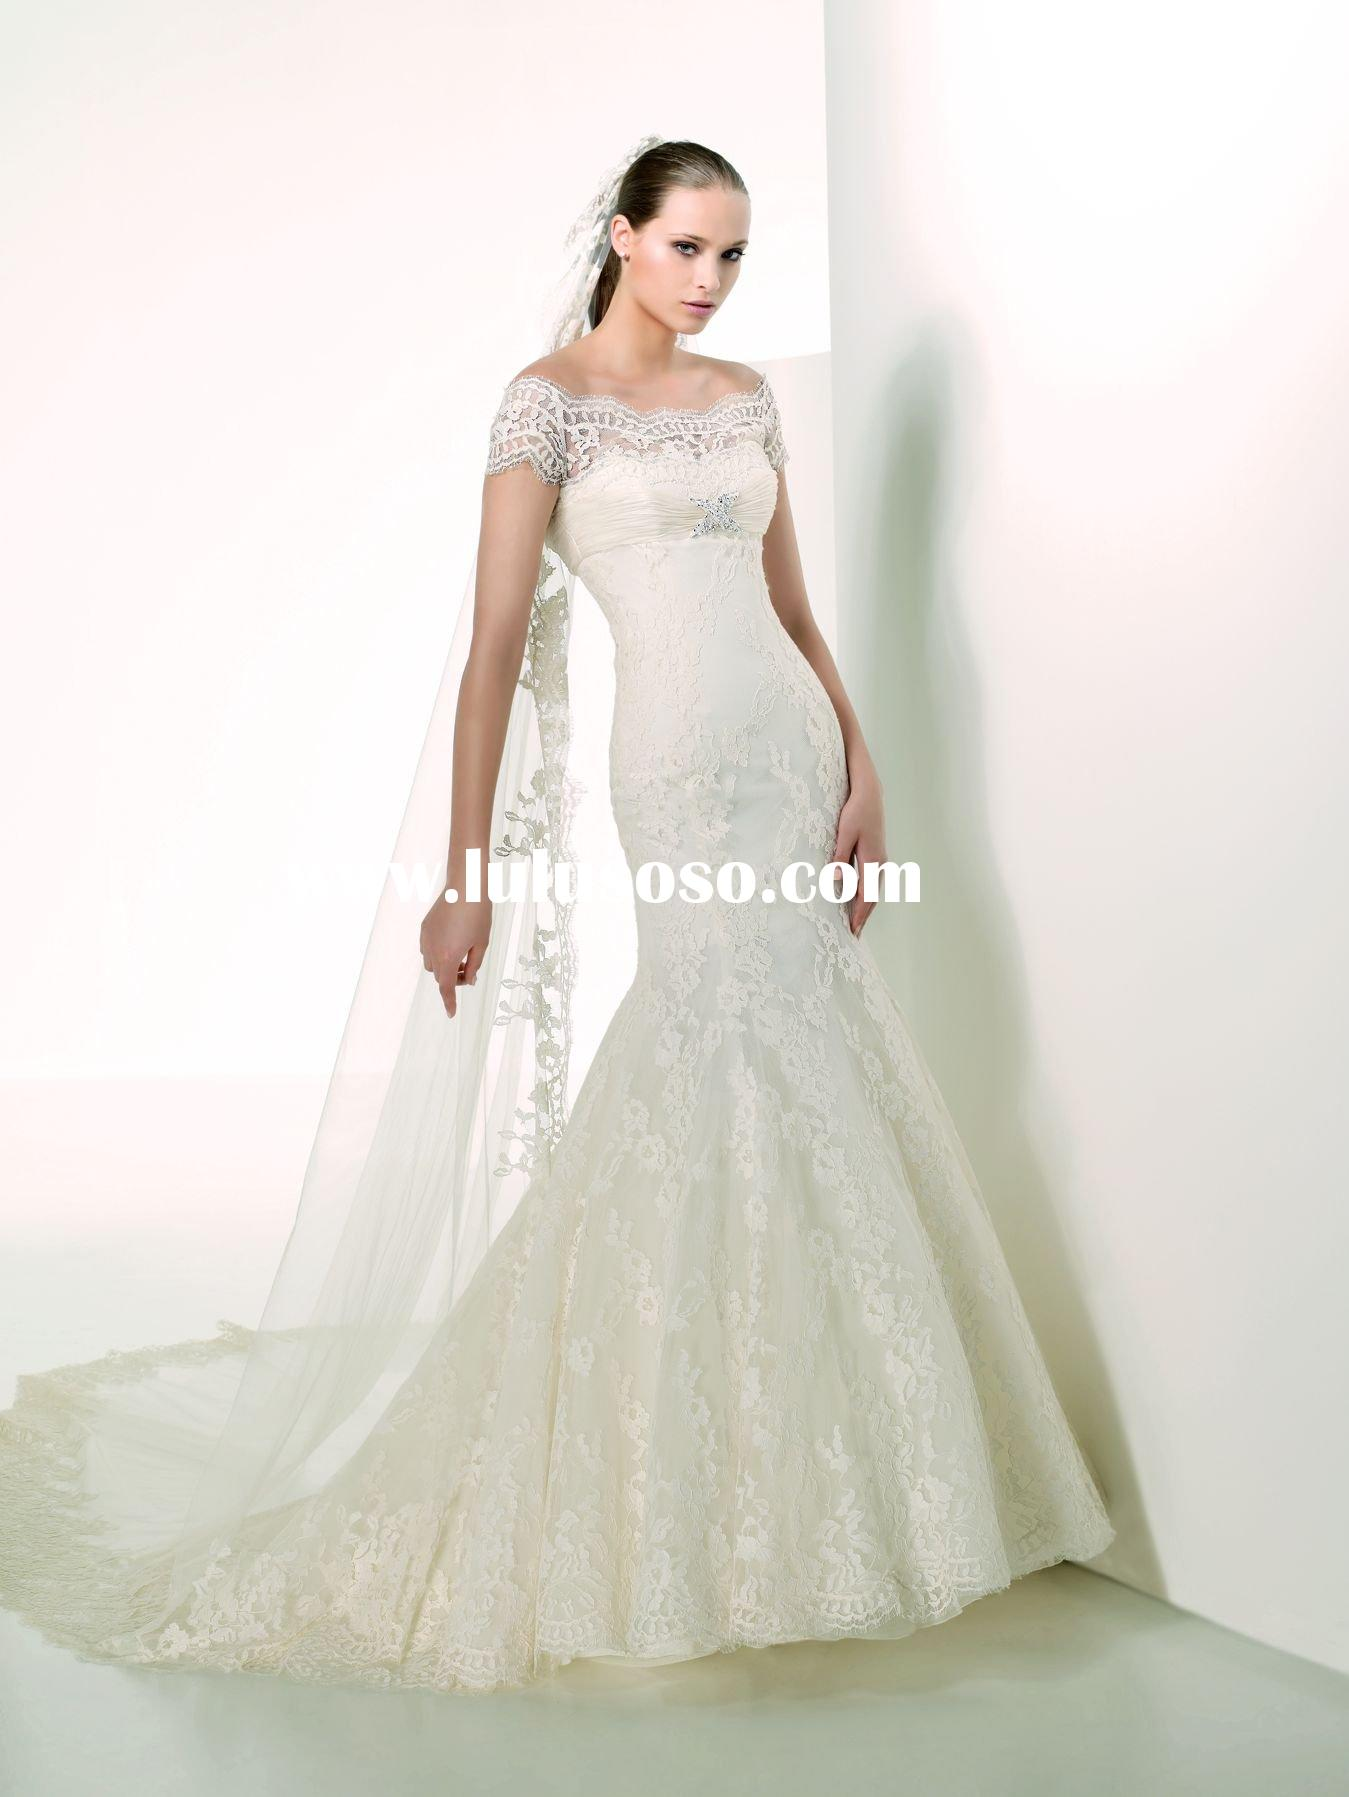 w470 High quality lace short sleeve mermaid wonderful wedding dress